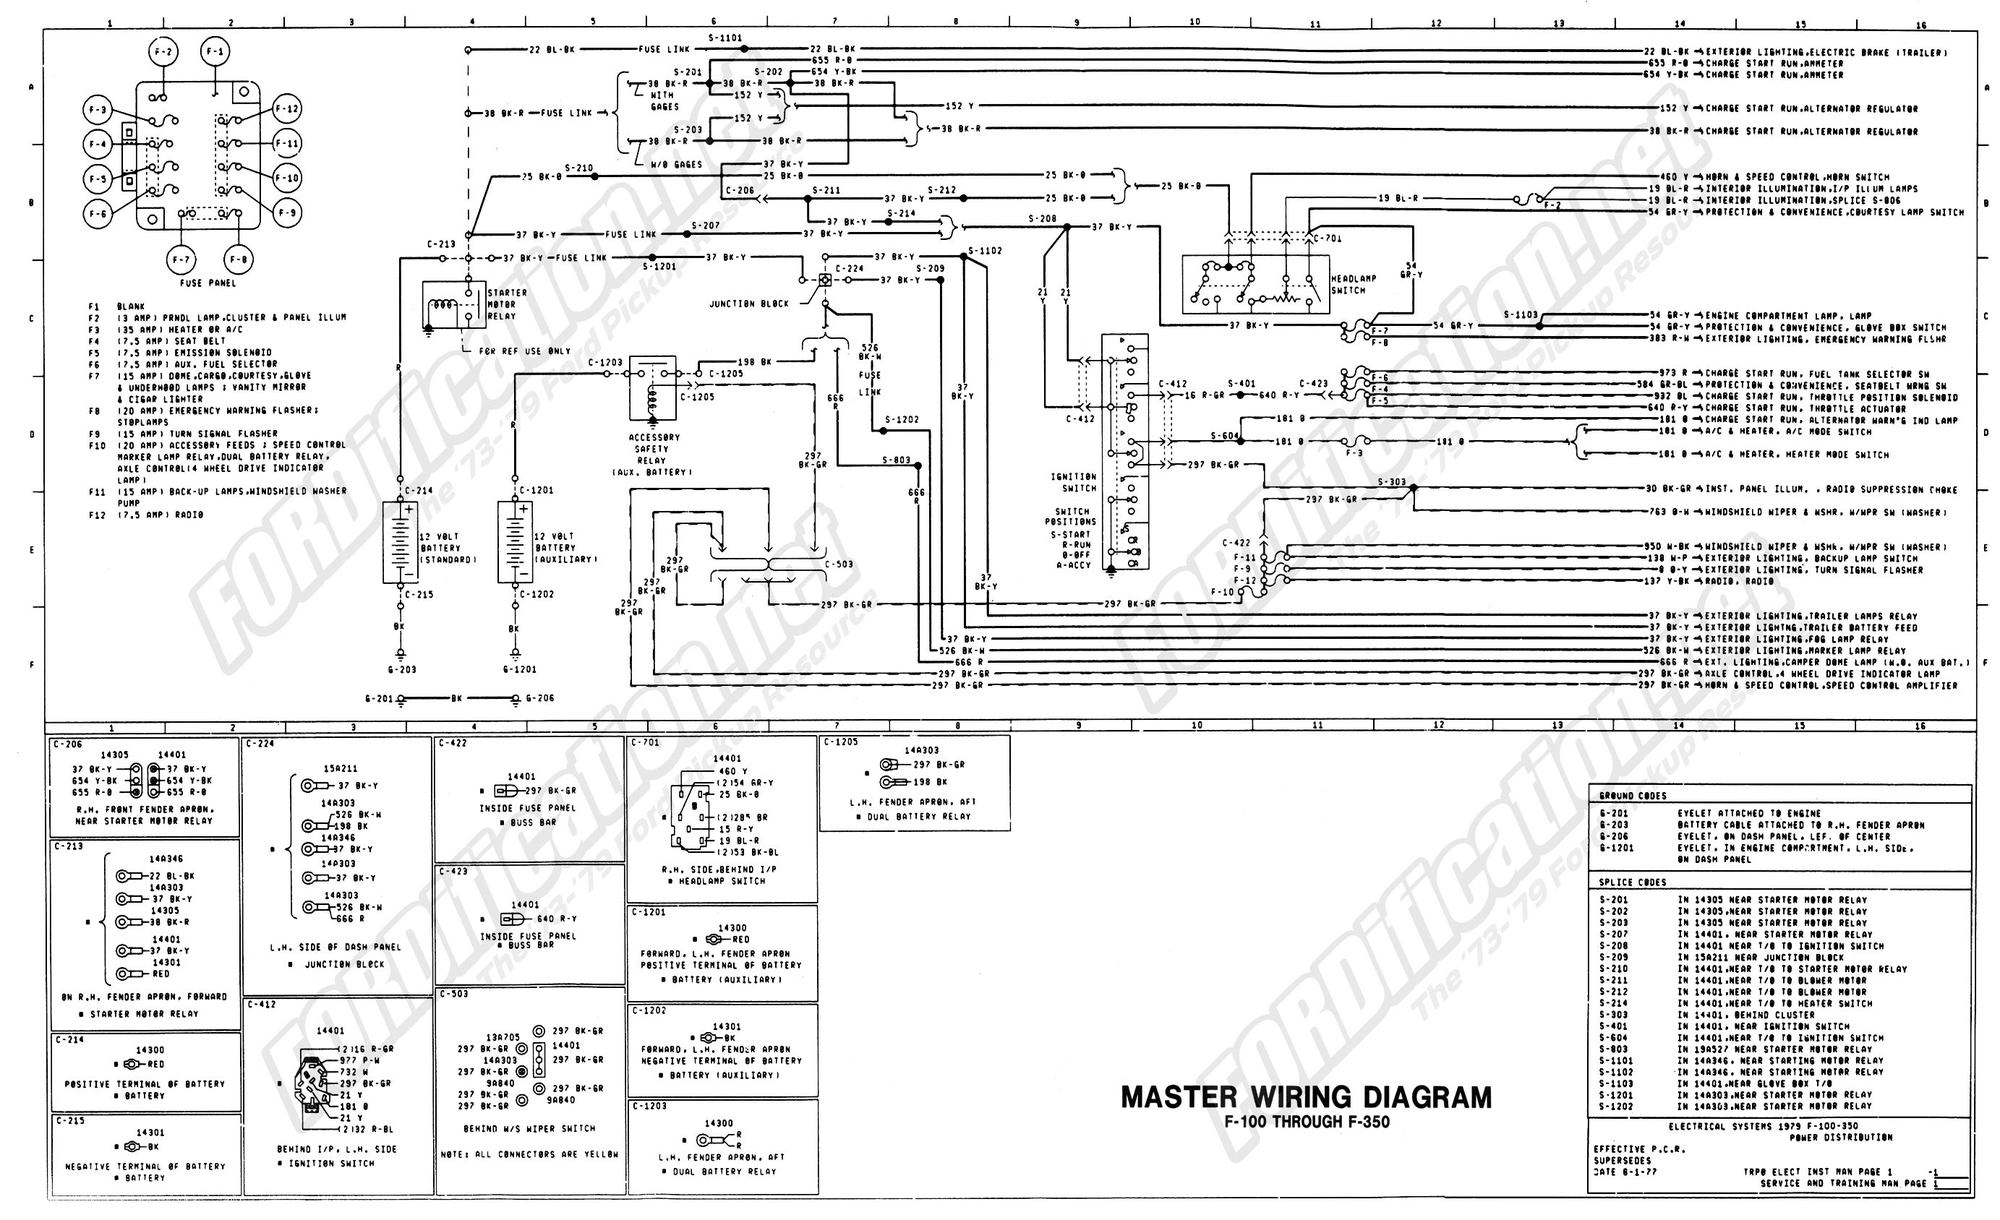 2013 Ford Fusion Dash Diagram as well Lincoln Welder Wiring Diagram as well Jeep 4 0 Inline 6 Diagram Html furthermore mercial Door Lock Parts Diagram besides Timing Belt Diagram Maintenance Replacement Html. on 7623 truck wont run